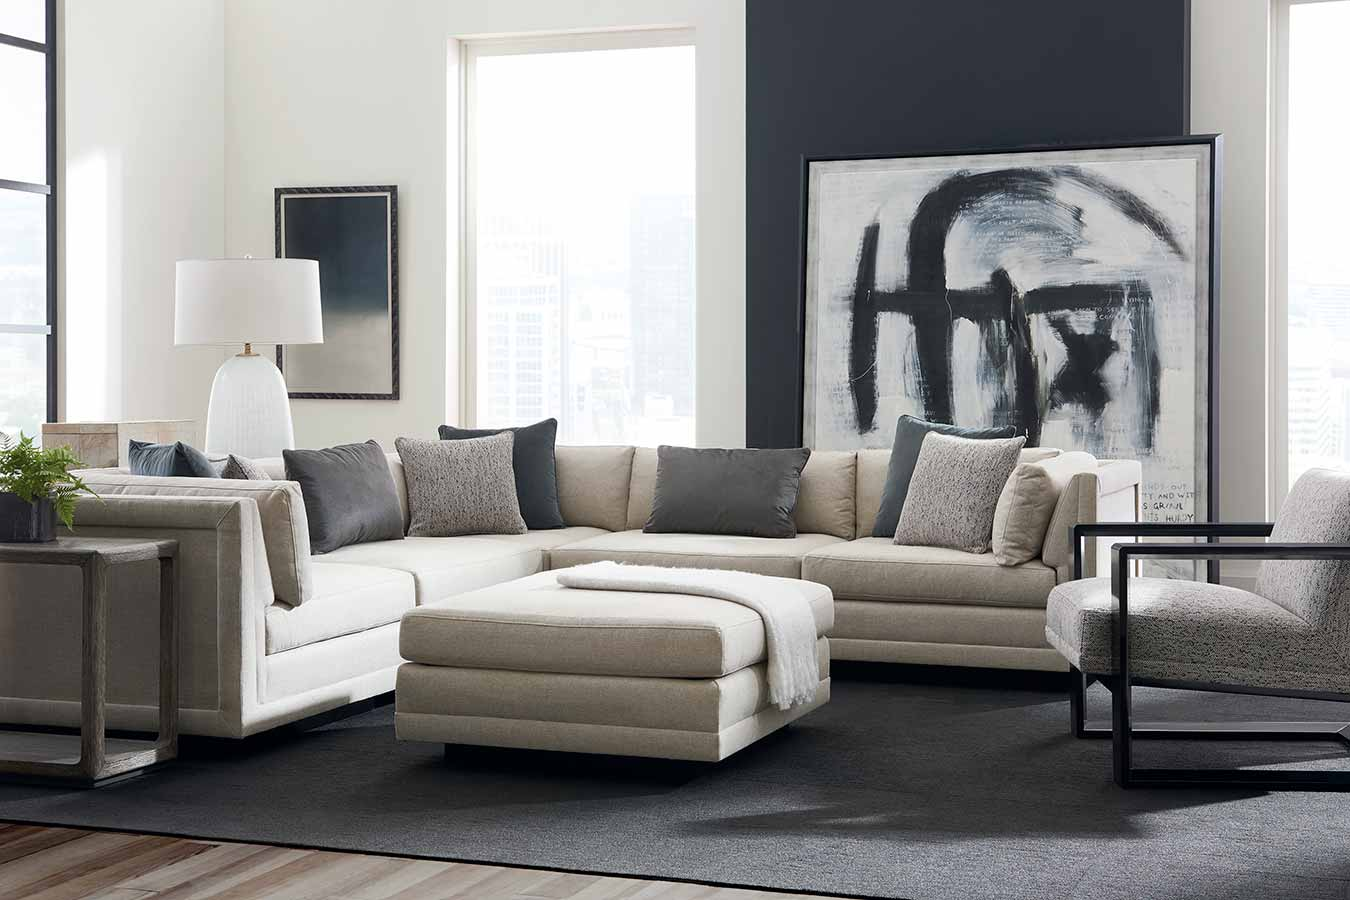 Modern Fusion Living Room | Contemporary Luxury Designer Modern Exclusive Handcrafted Furniture | Sandton Johannesburg